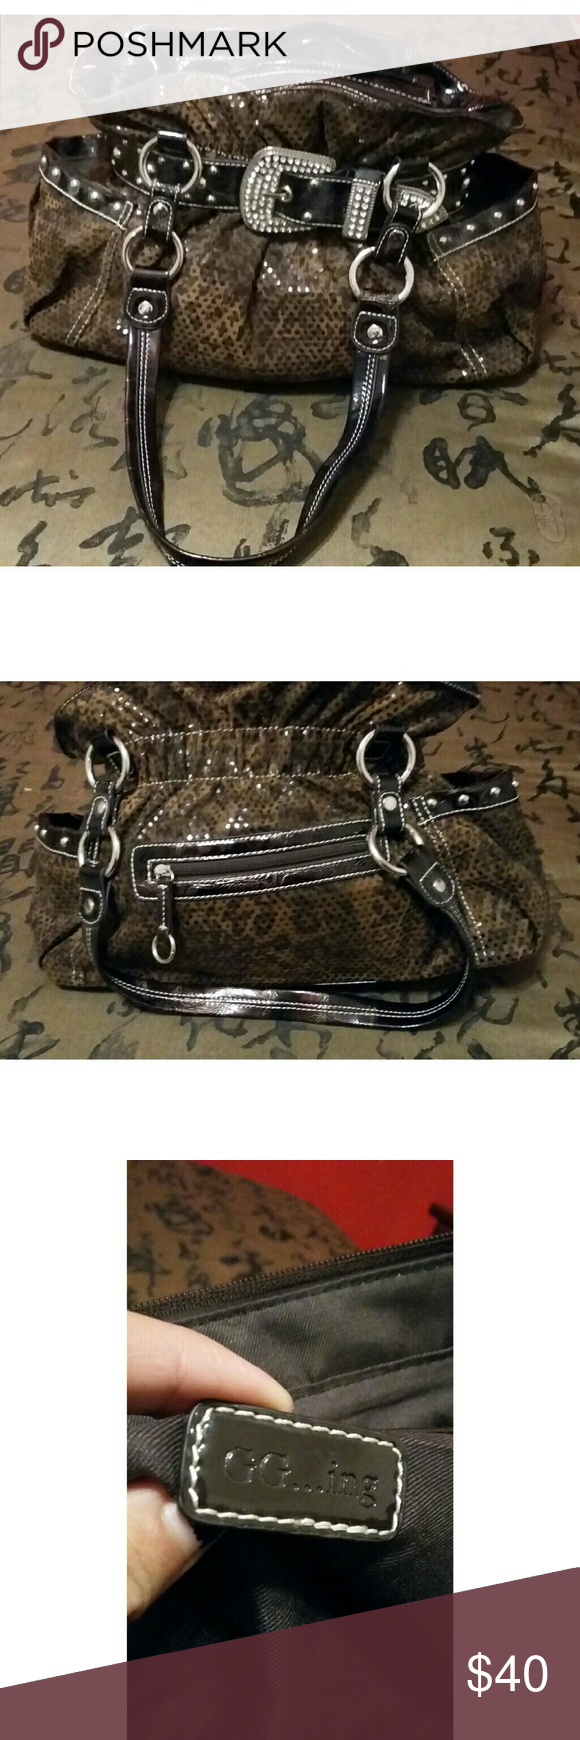 Leather Purse Gg Ing In Perfect Condition Barely Been Used Bags